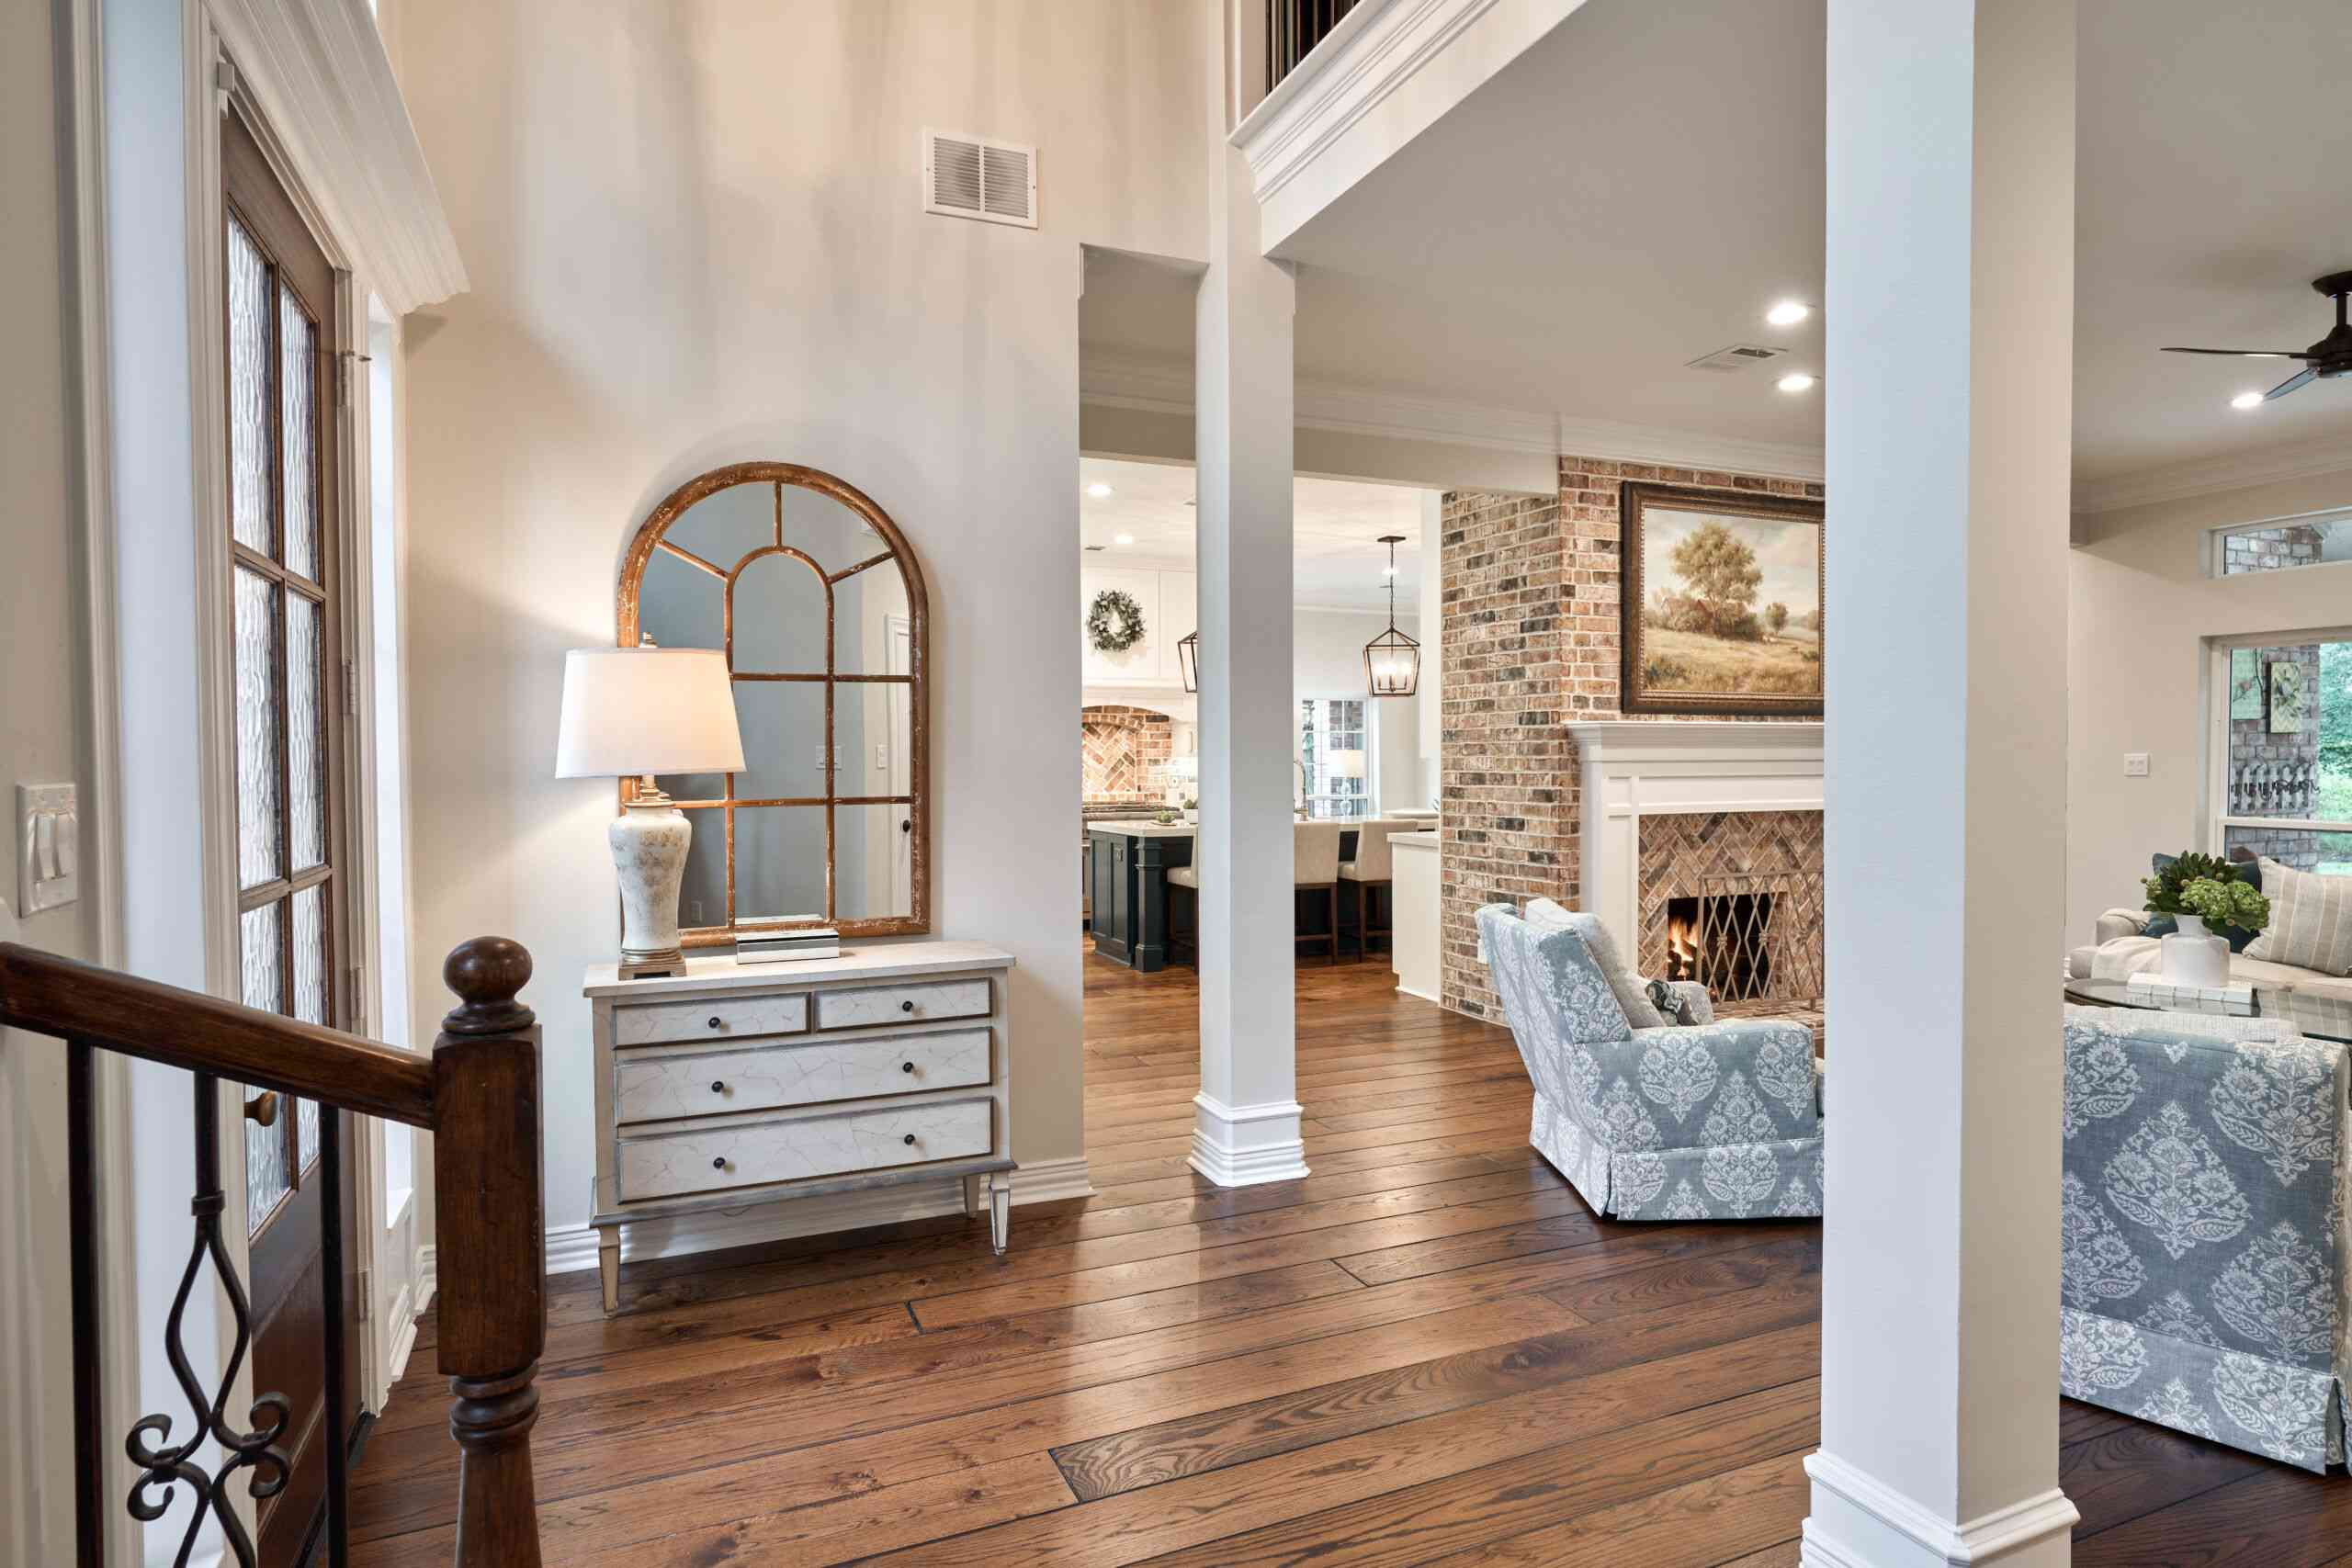 Entryway with a dresser as a console